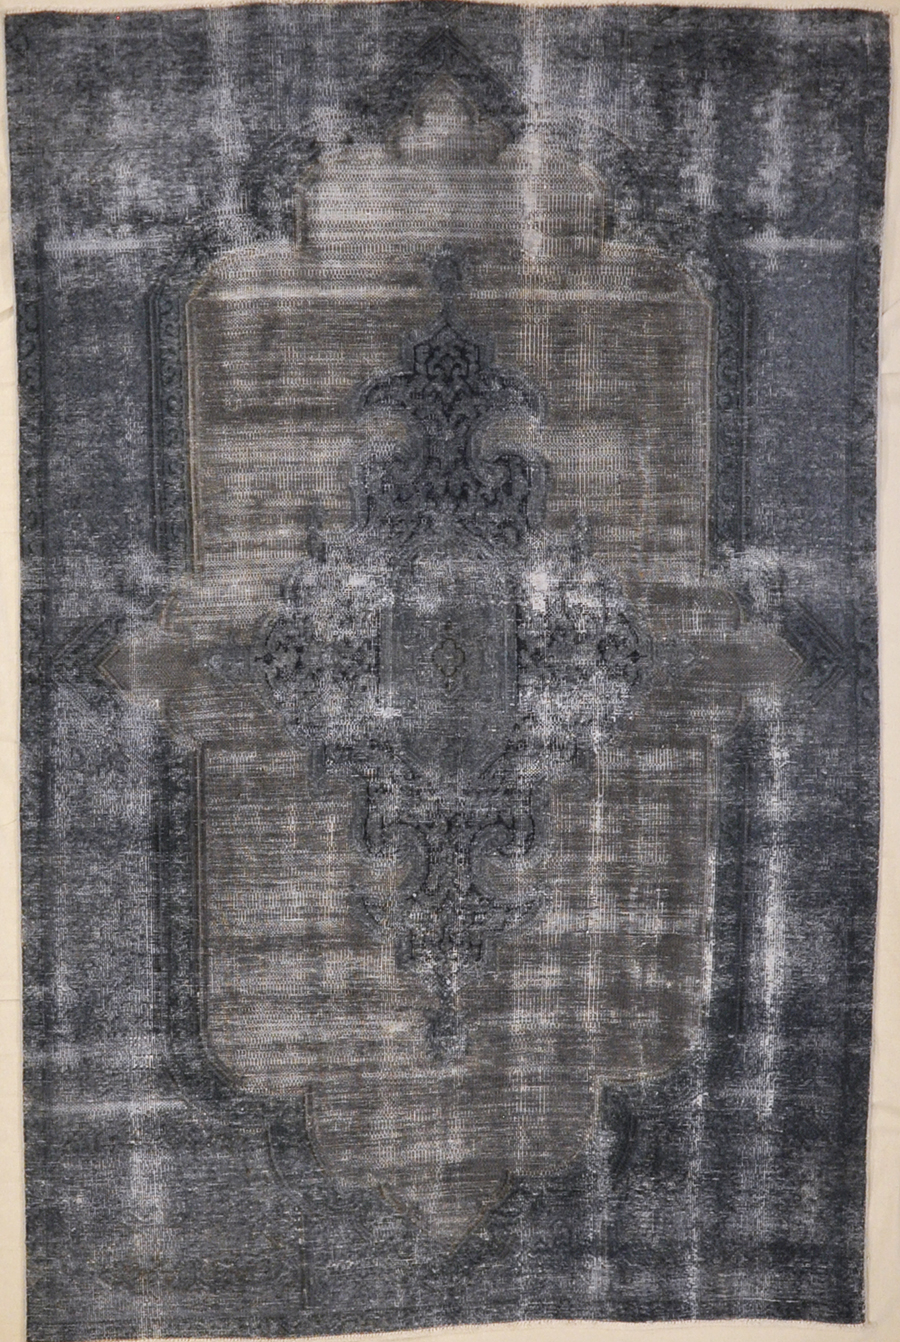 Antique Overdye Rugs & More Oriental Carpets 30257